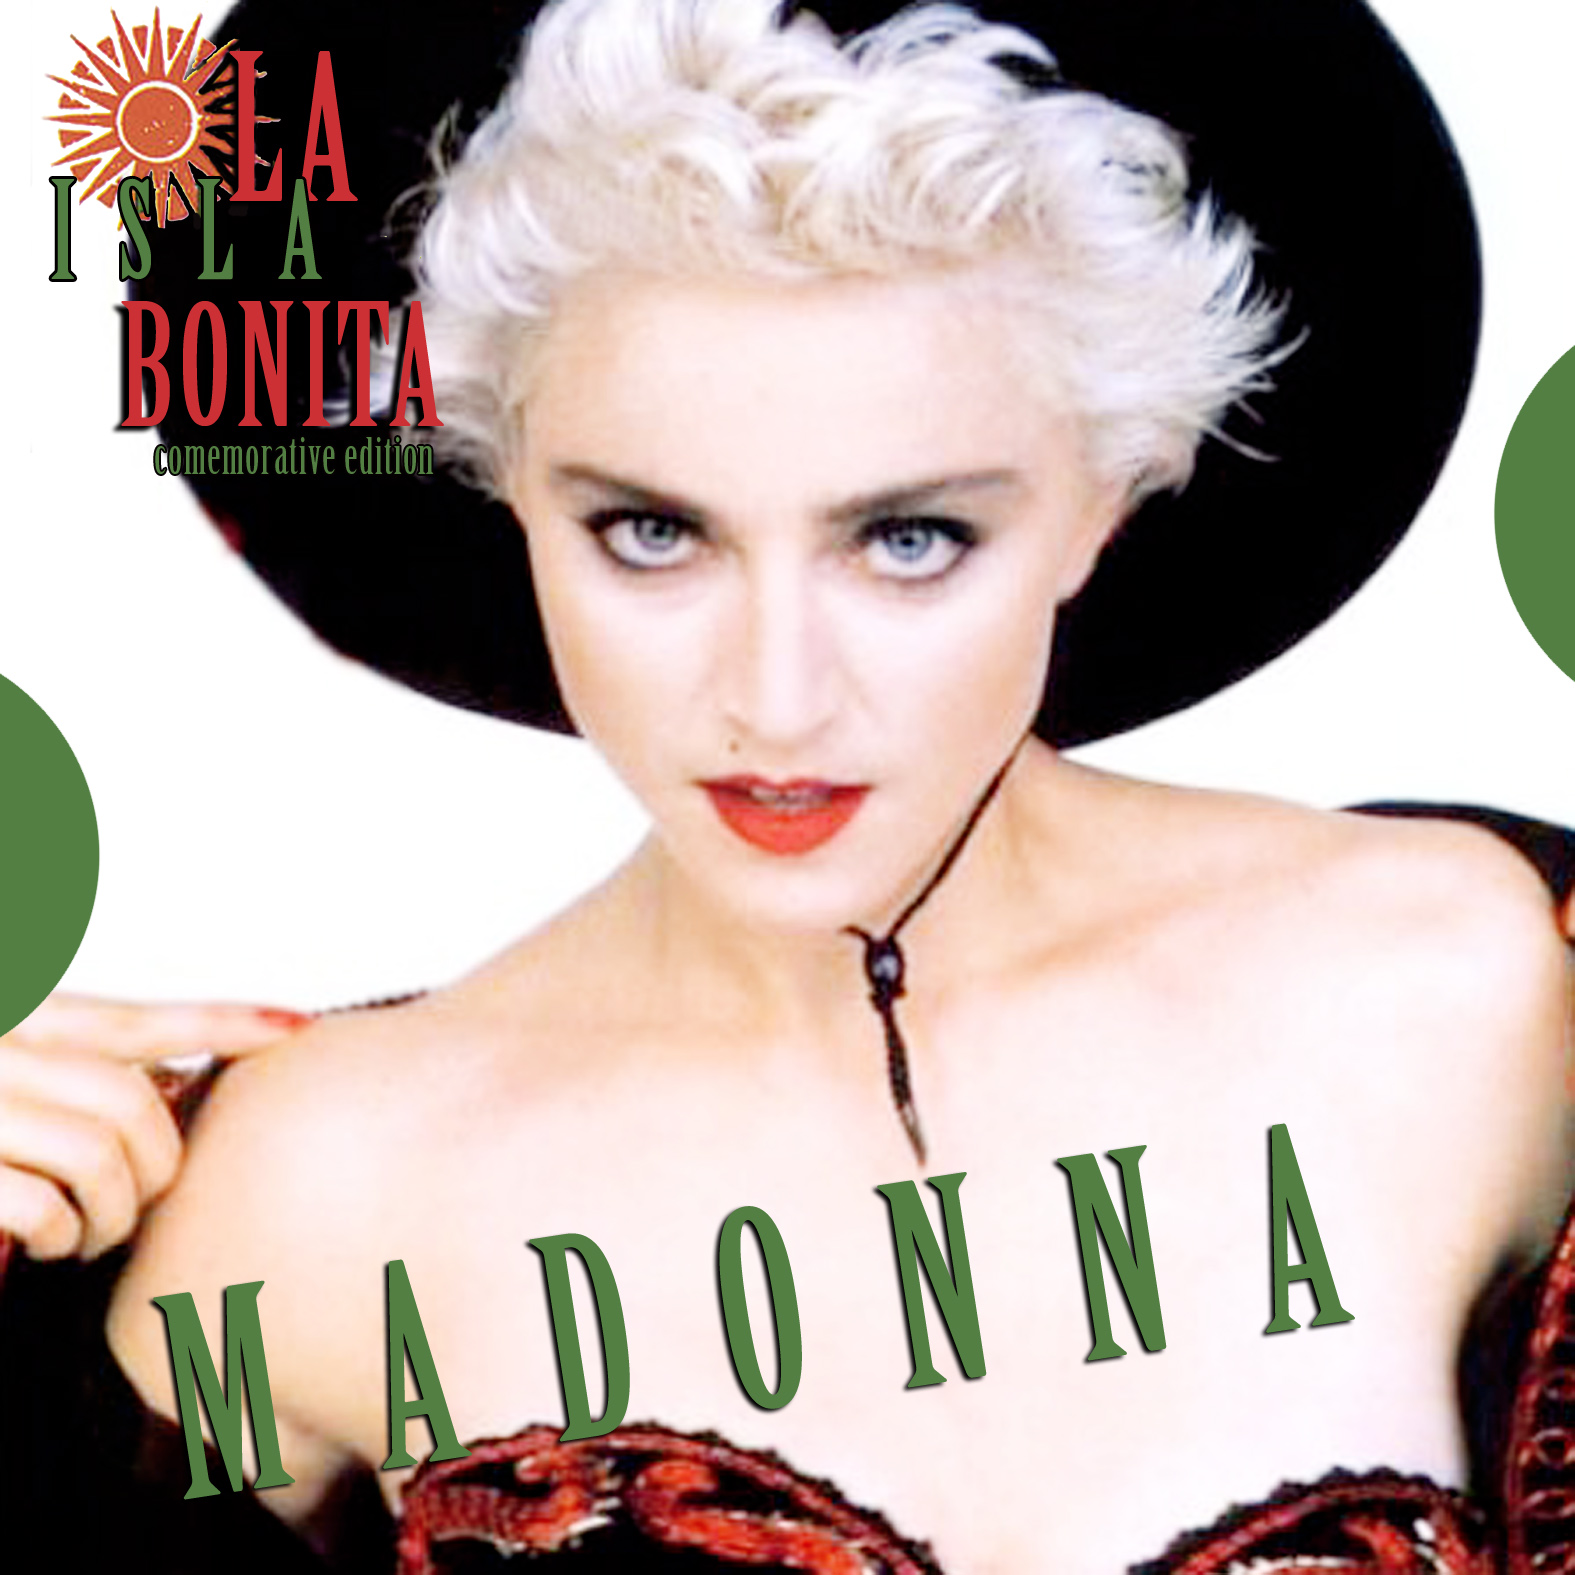 Video madonna la isla bonita official music video hd | glee.